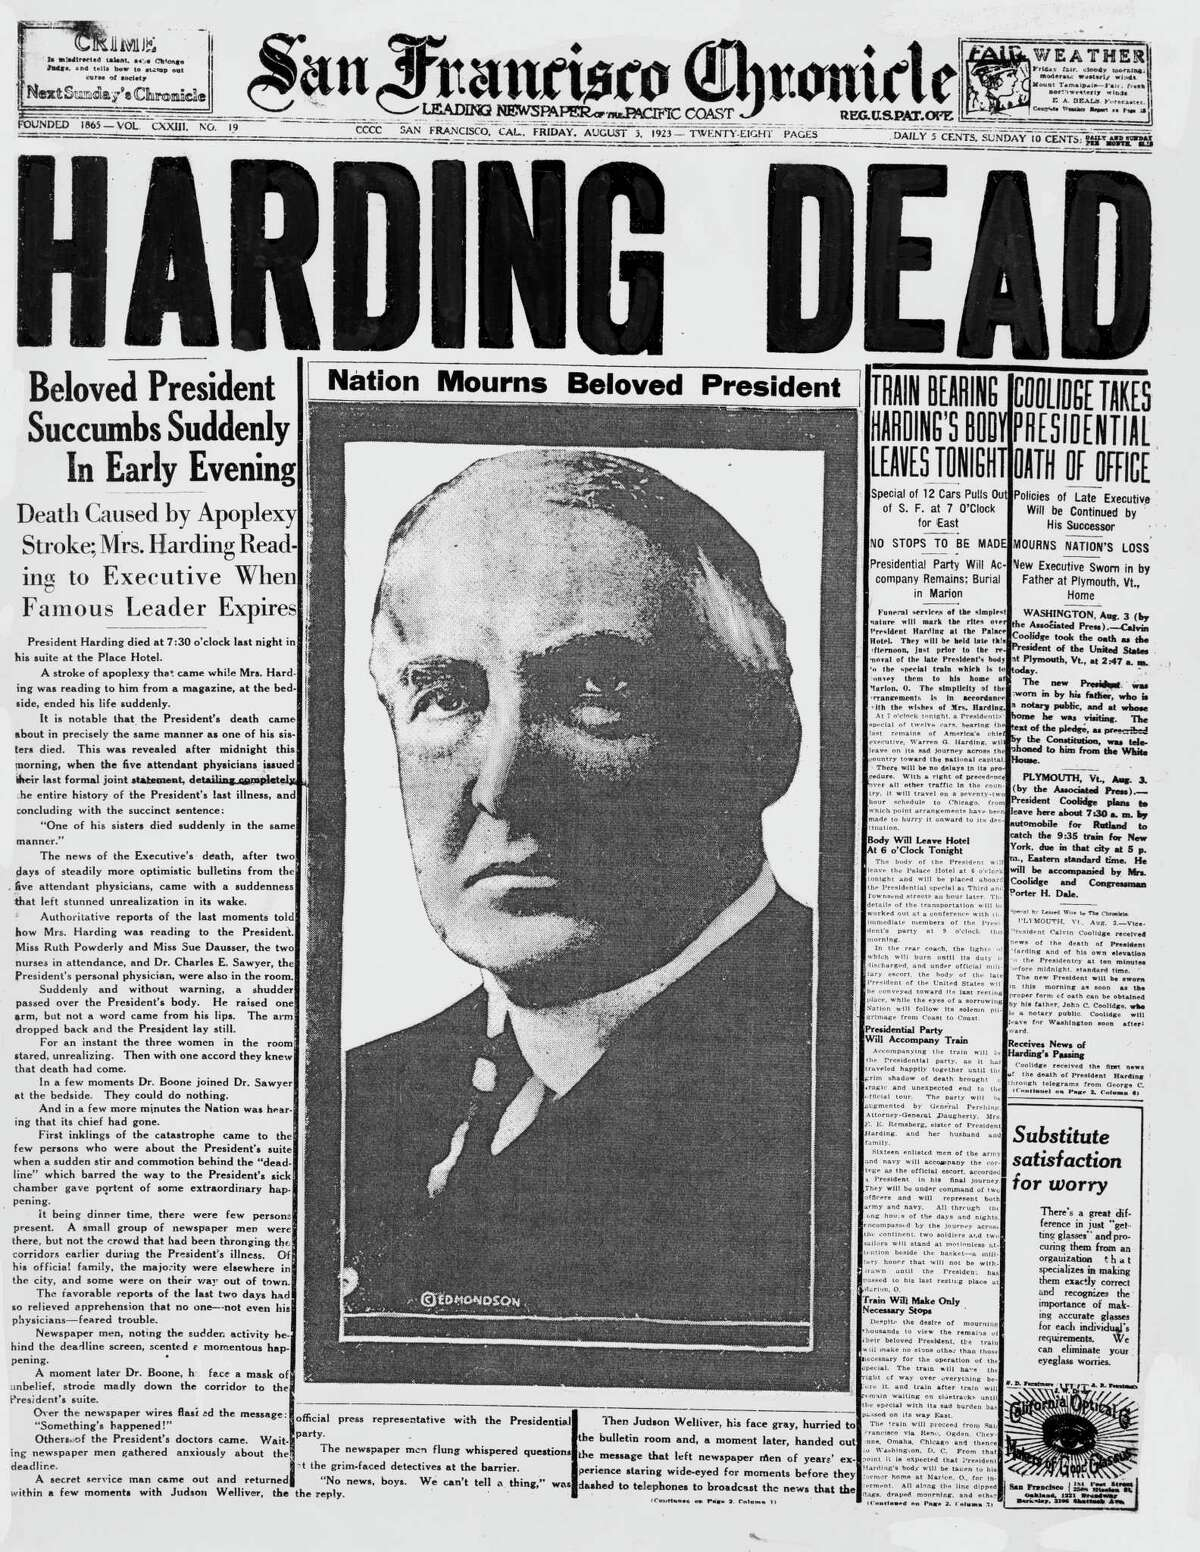 An ailing, haggard Warren G. Harding was put through a series of outdoor events on a hot day in August 1923 after a strenuous trip to Alaska. The Seattle exertions likely contributed to his death soon after in a San Francisco hotel room.